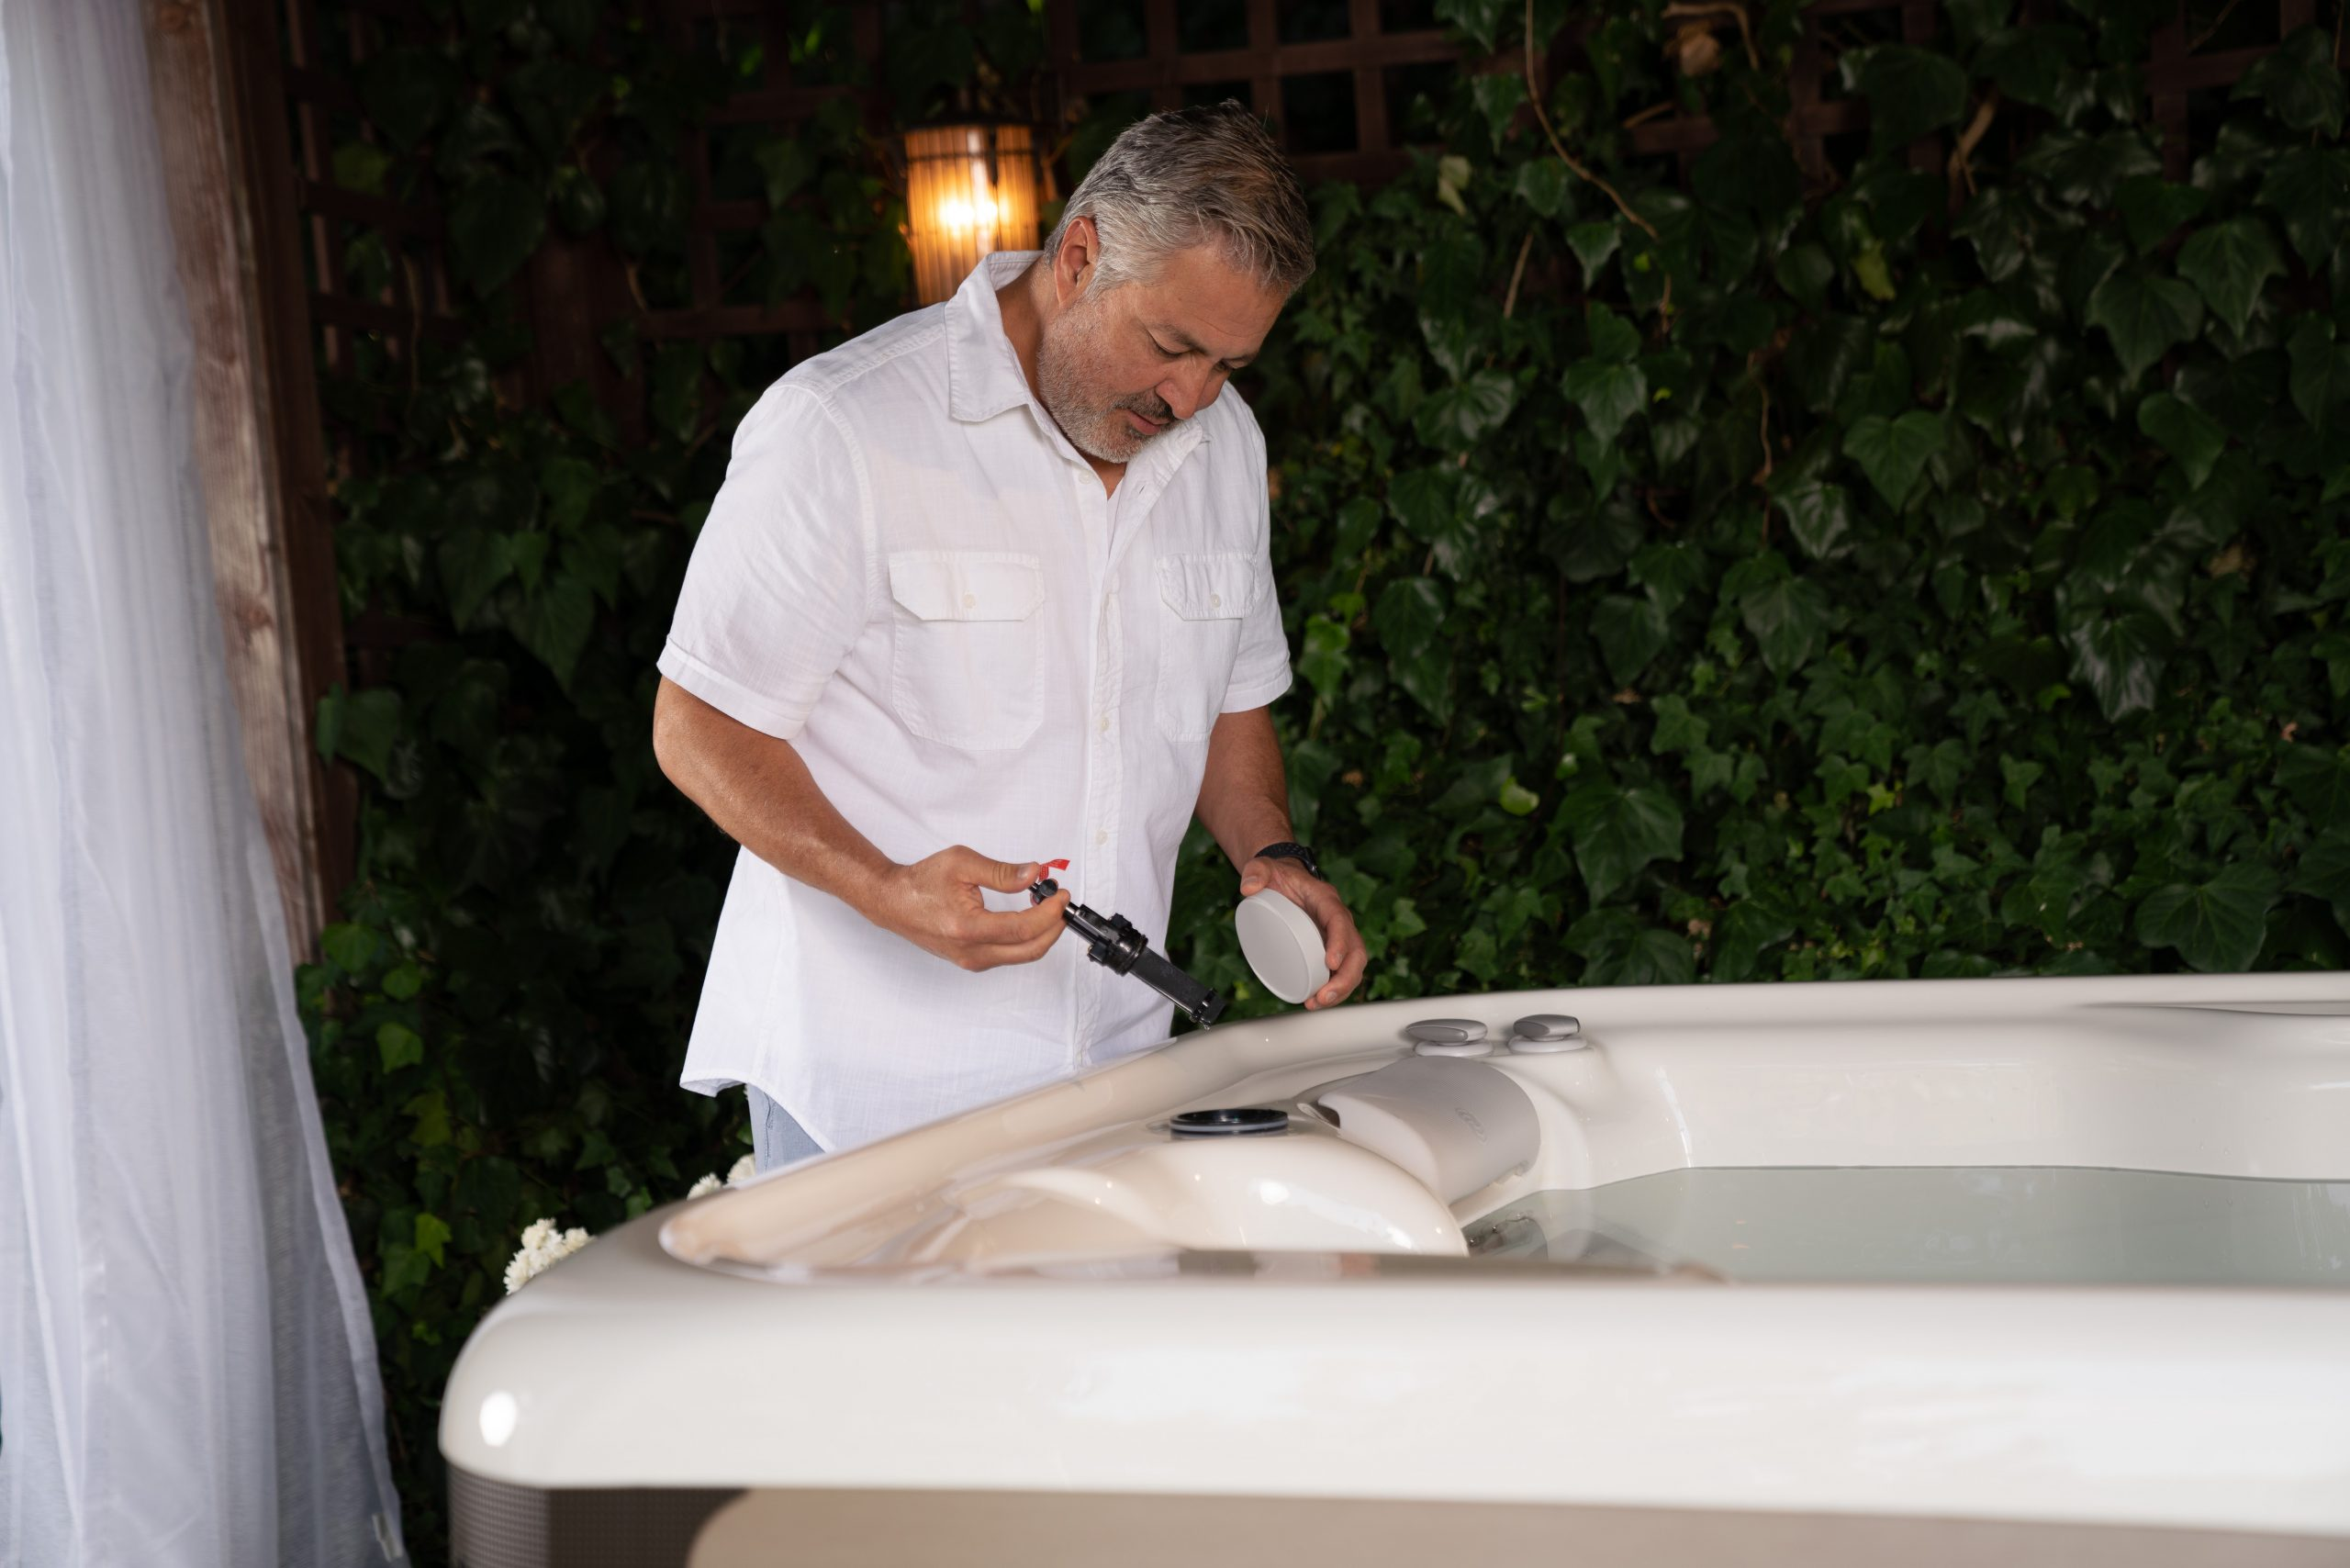 5 Common Mistakes To Avoid When Using Your Hot Tub